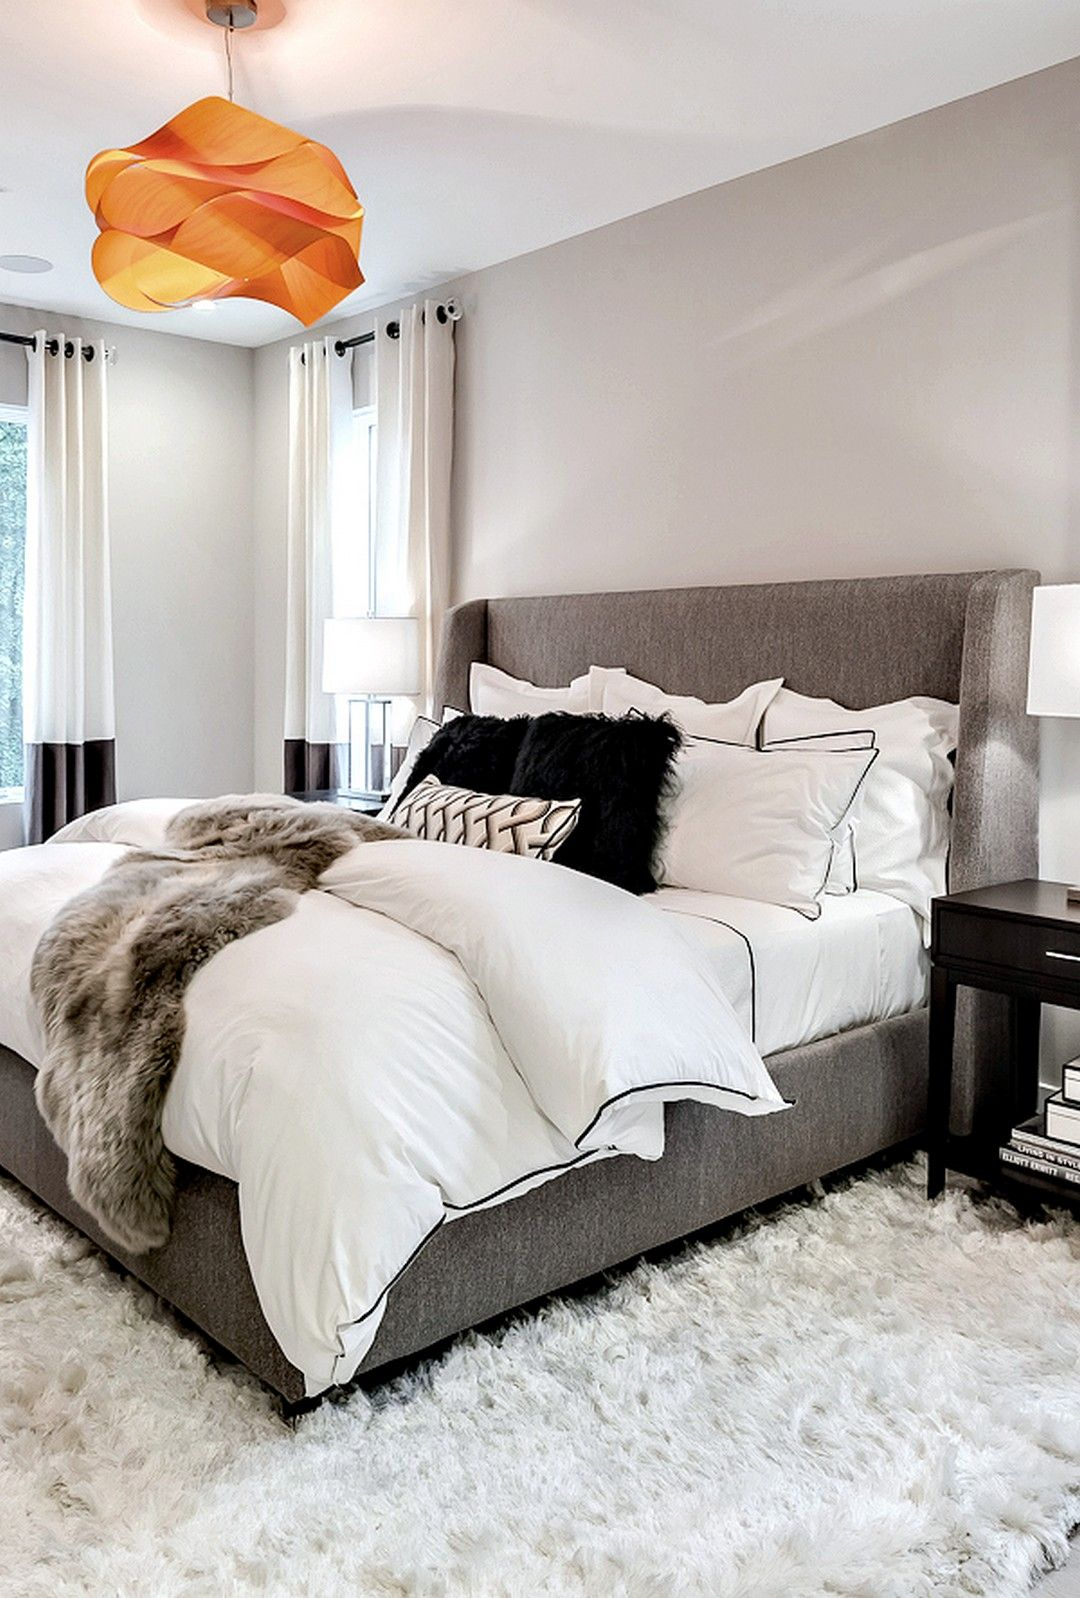 Create Dream Bedroom 17 Picture Gallery For Website cool Affordable